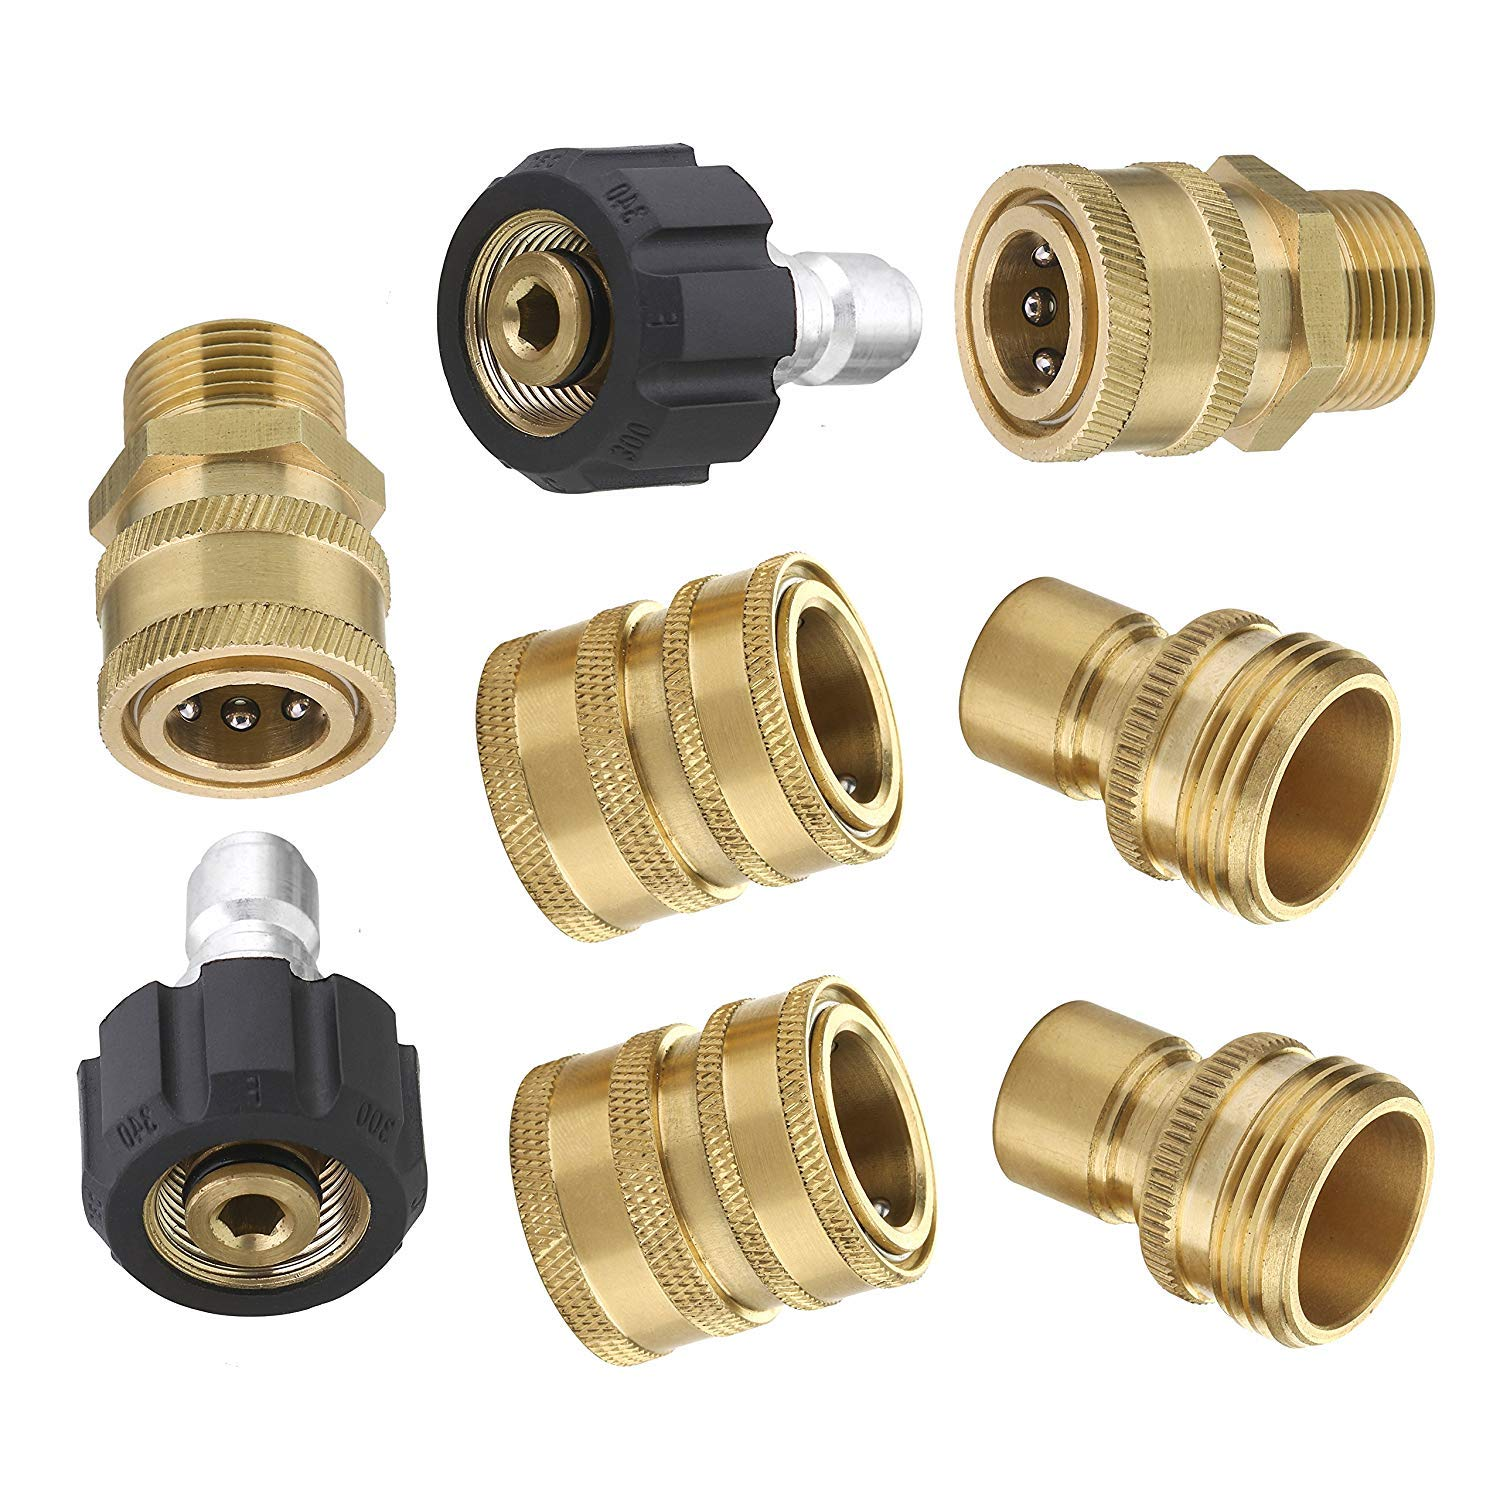 8pcs Pressure Washer Adapter Kit,Garden Hose Quick Connect Fittings,M22 Swivel to 3/8'' Quick Connect, 3/4'' to Quick Release